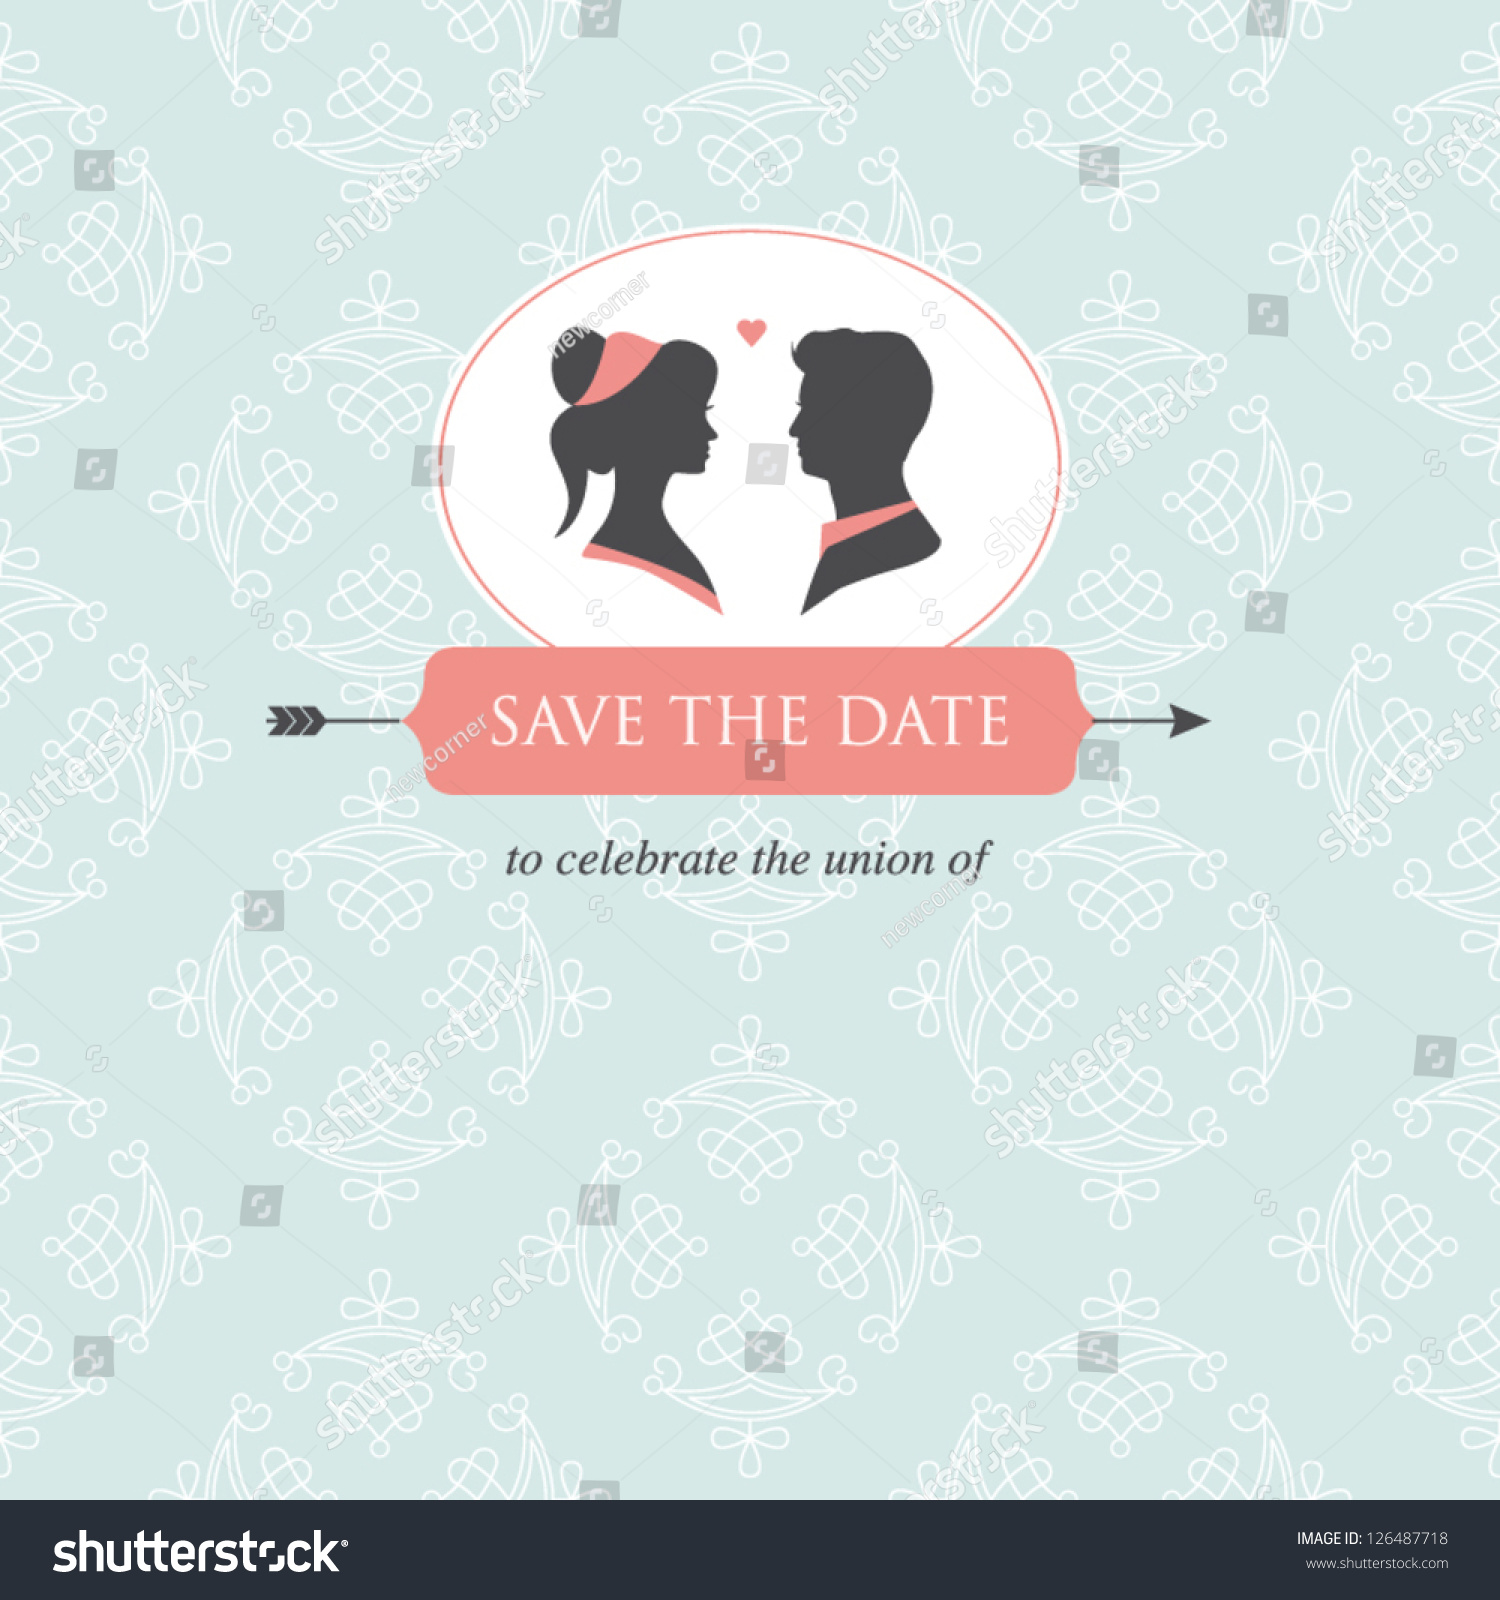 Wedding Invitation Card Template Editable Wedding Stock Vector ...